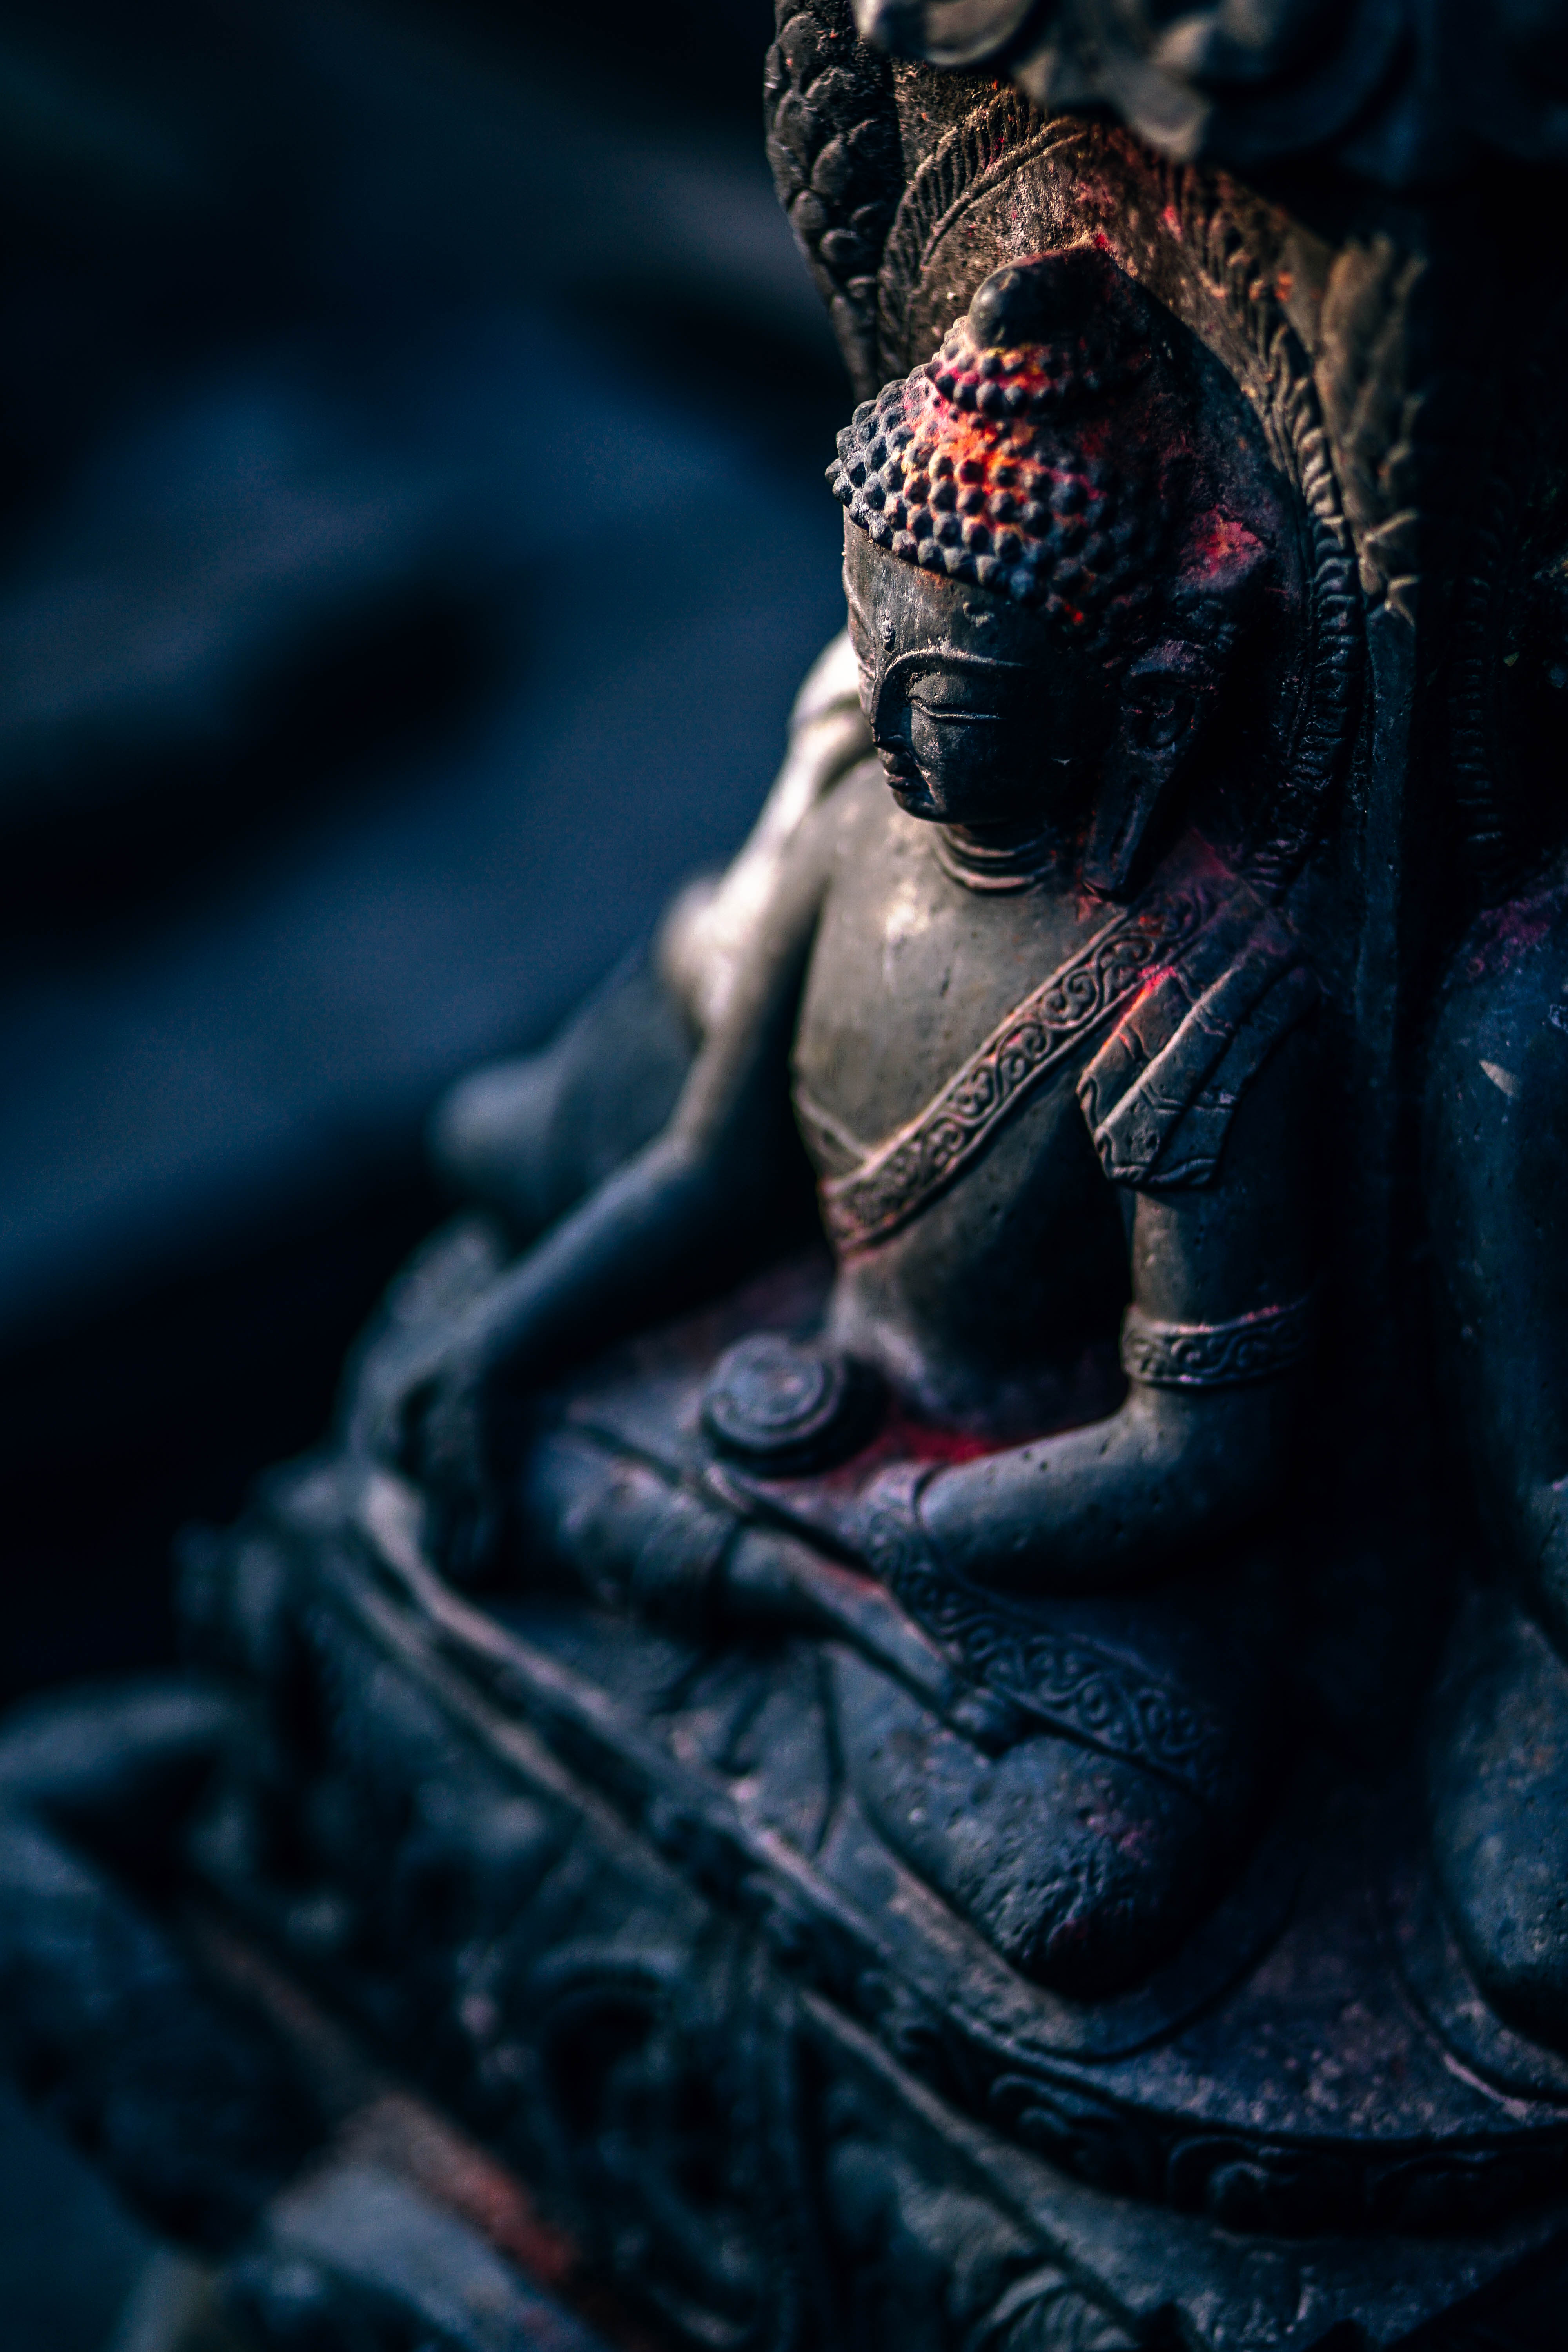 3d Wallpaper For Desktop Icon Buddha Pictures Amp Images Hq Download Free Photos On